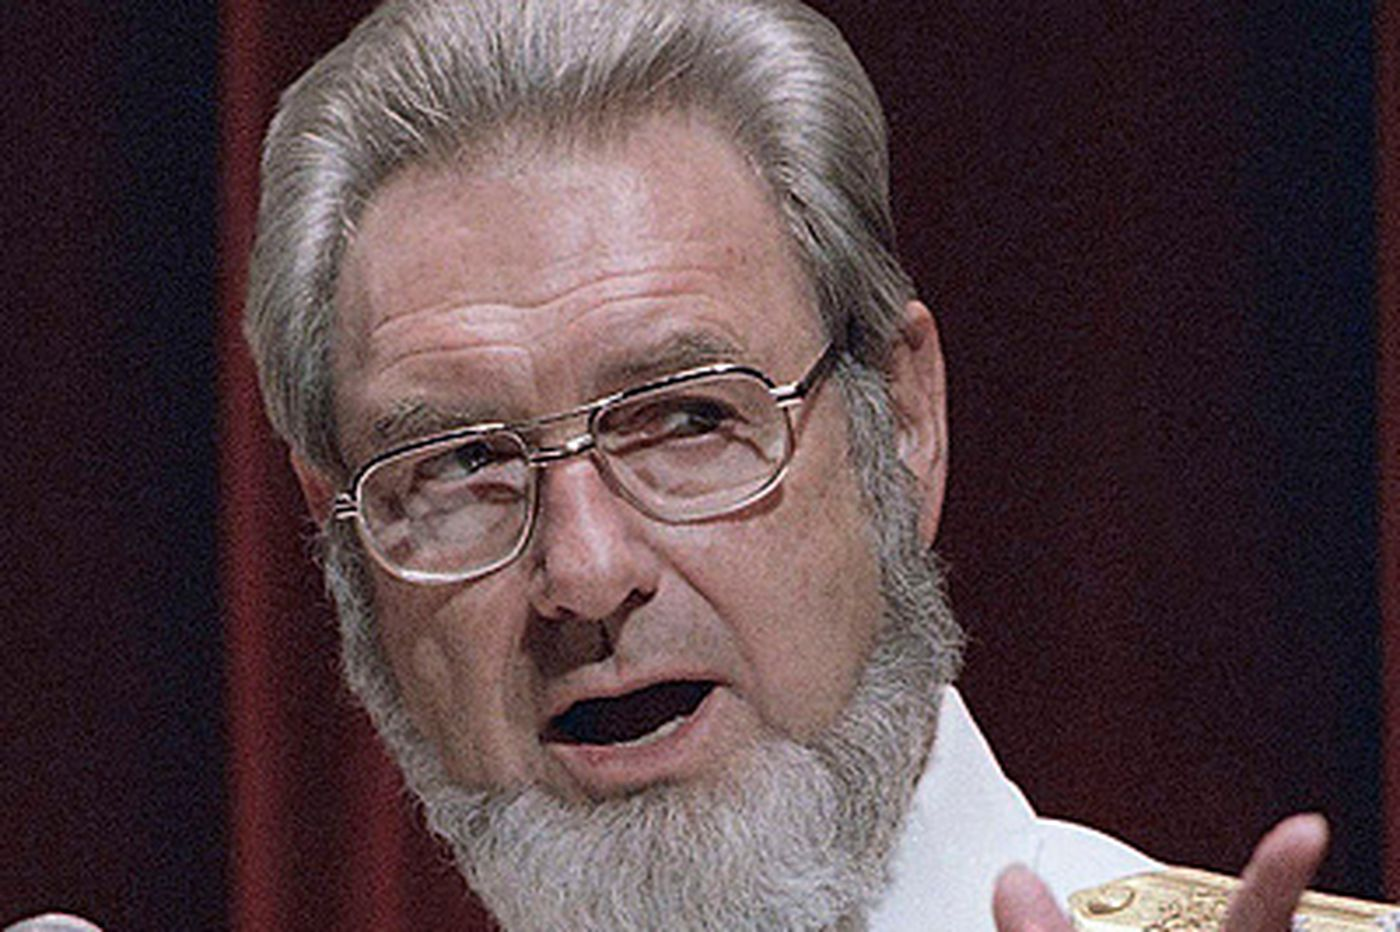 C. Everett Koop, 96, former surgeon general with deep Philadelphia roots